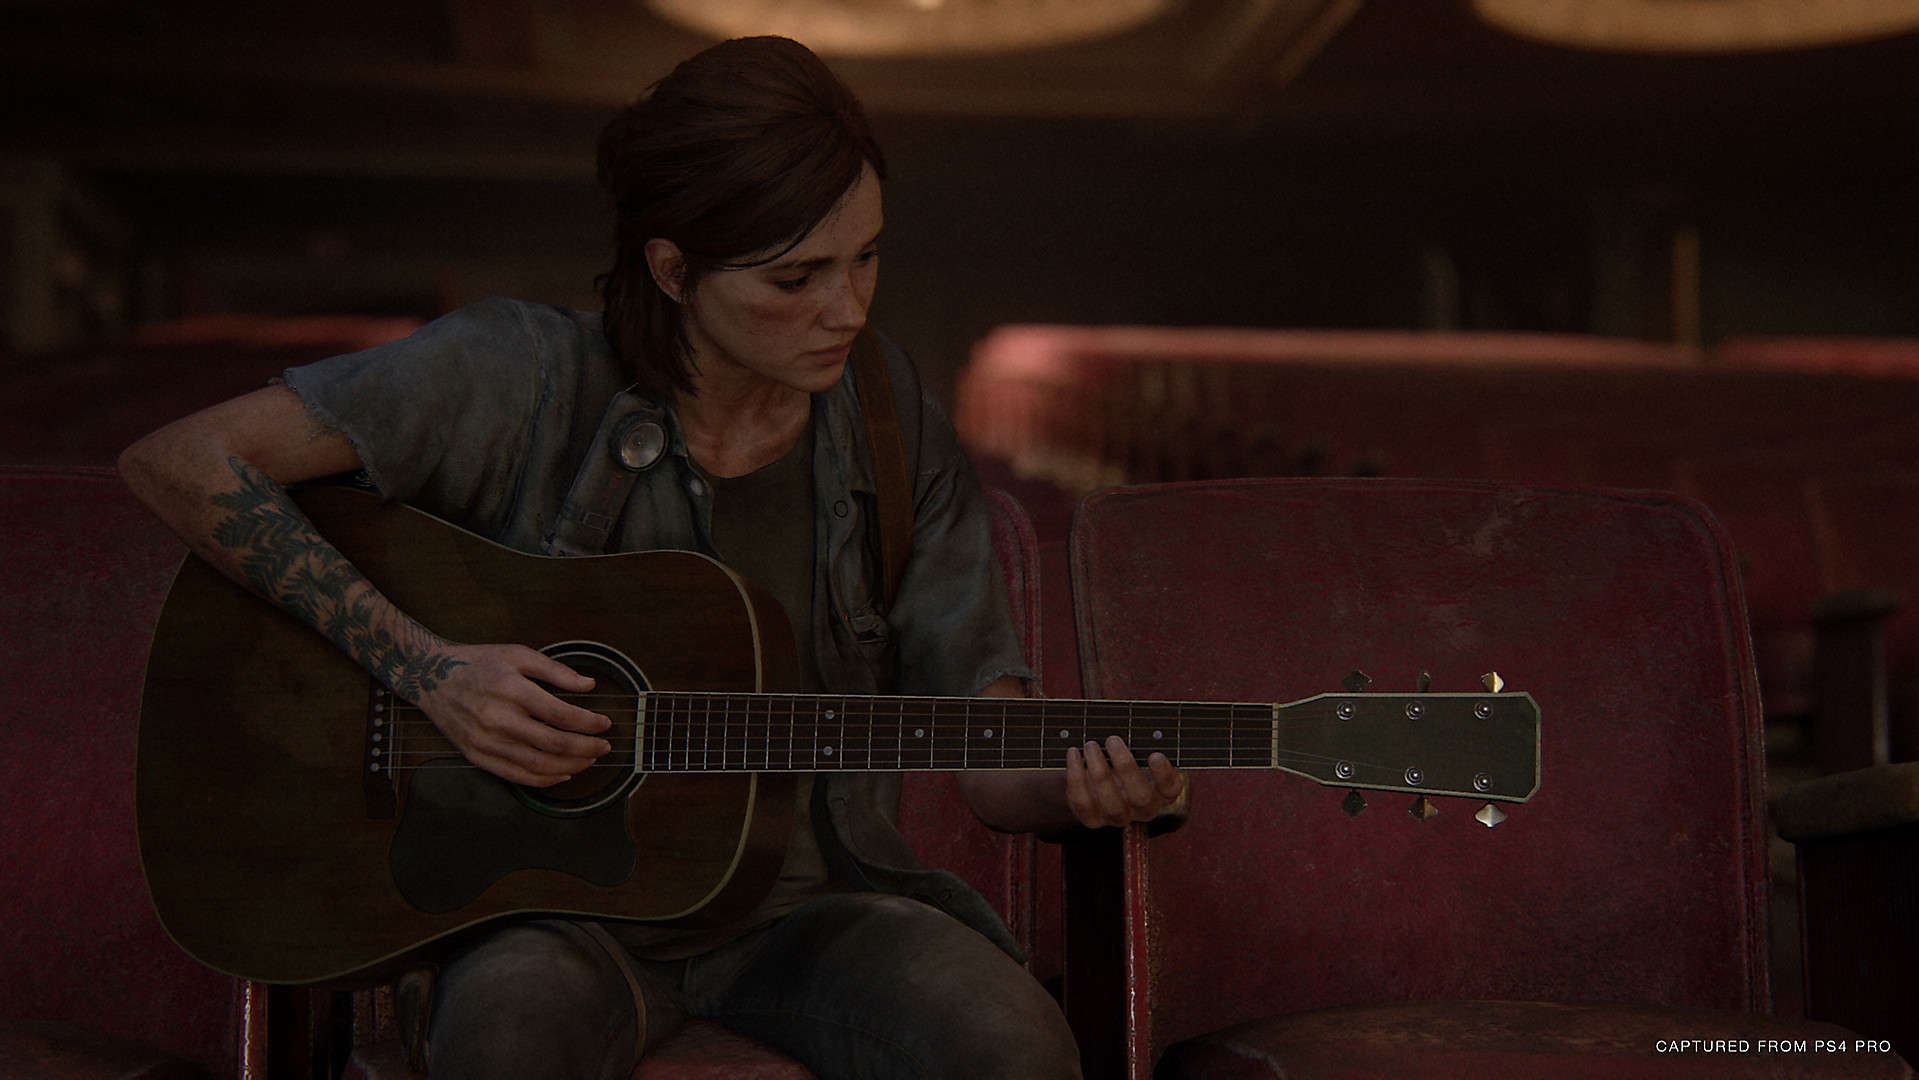 The Last of Us Part II is a beautiful, real story about broken people in a broken world